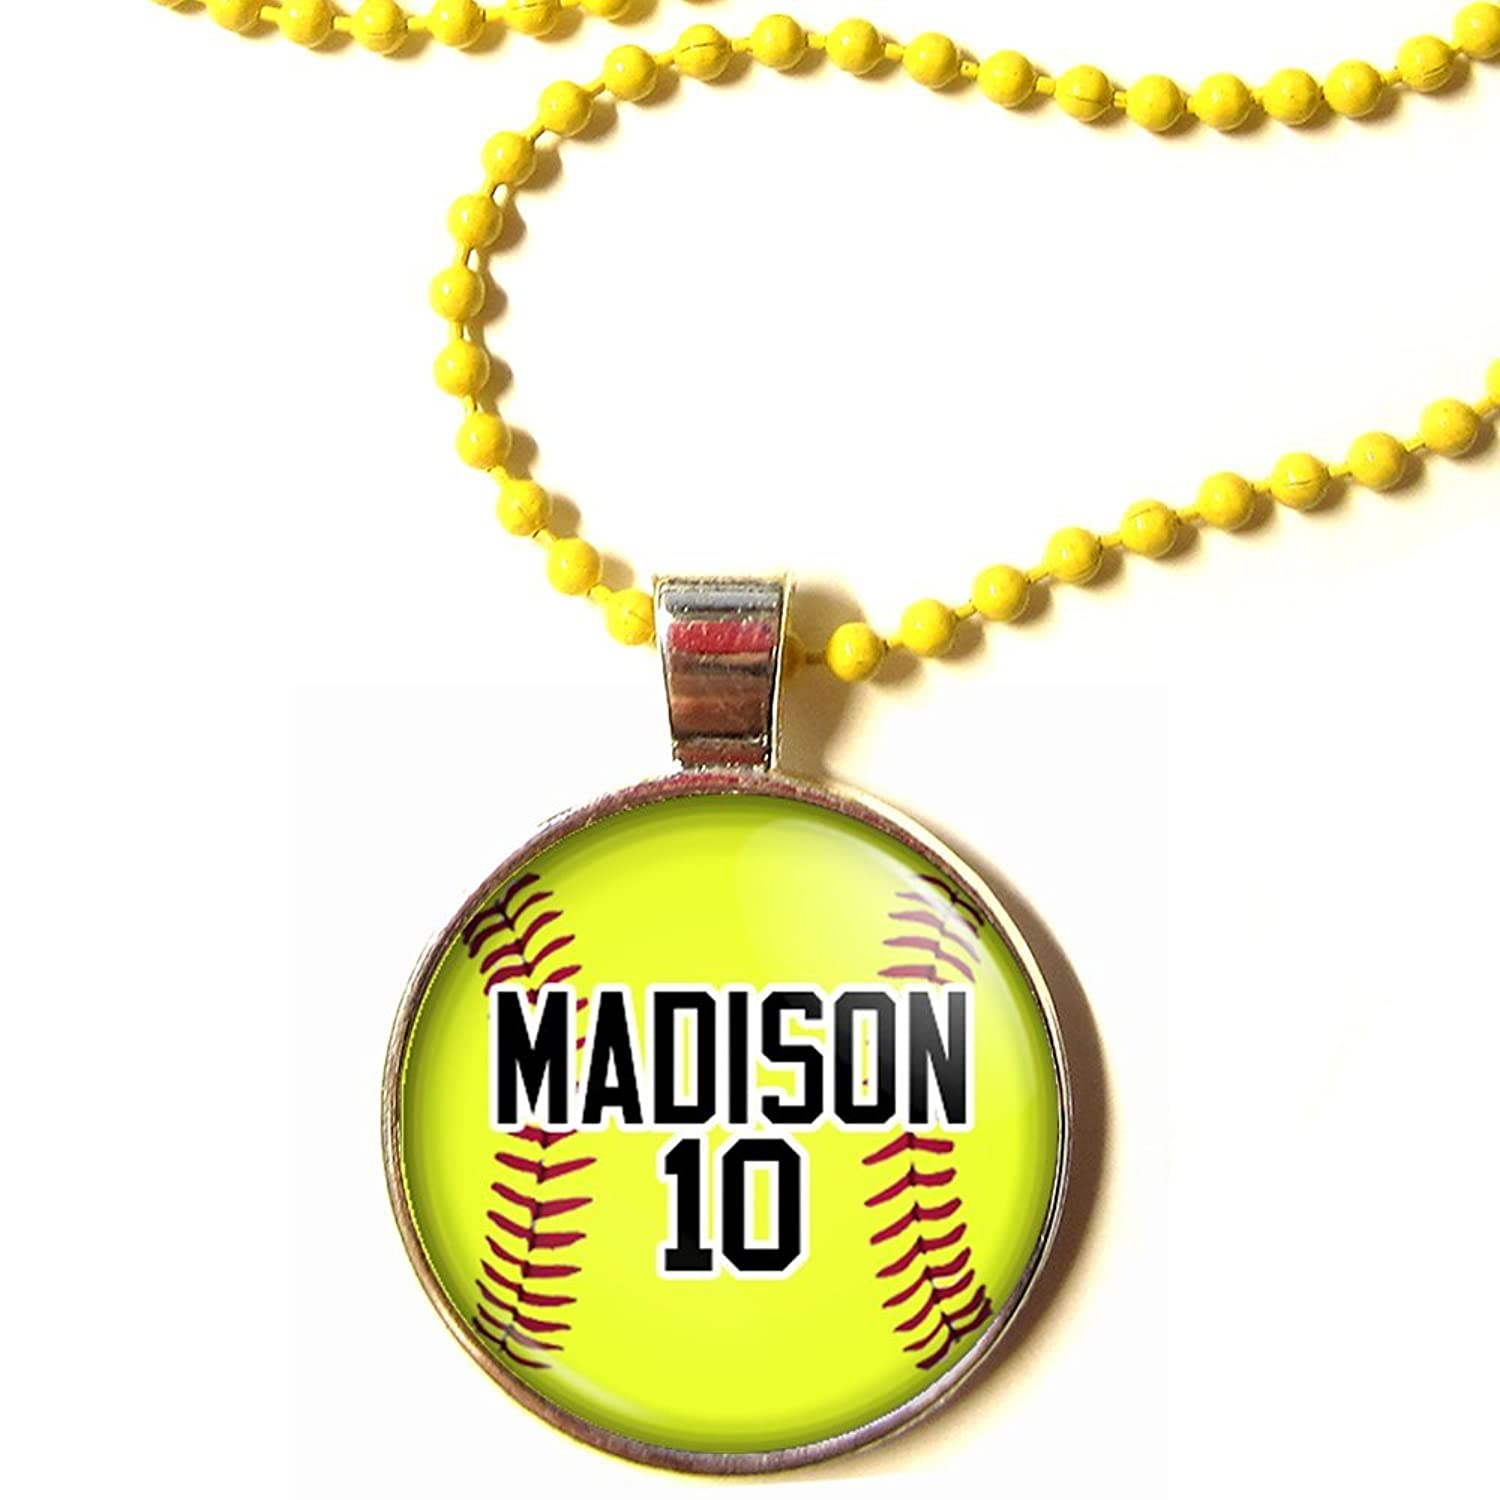 the diy baseball exhausted necklaces softball washer mom necklace